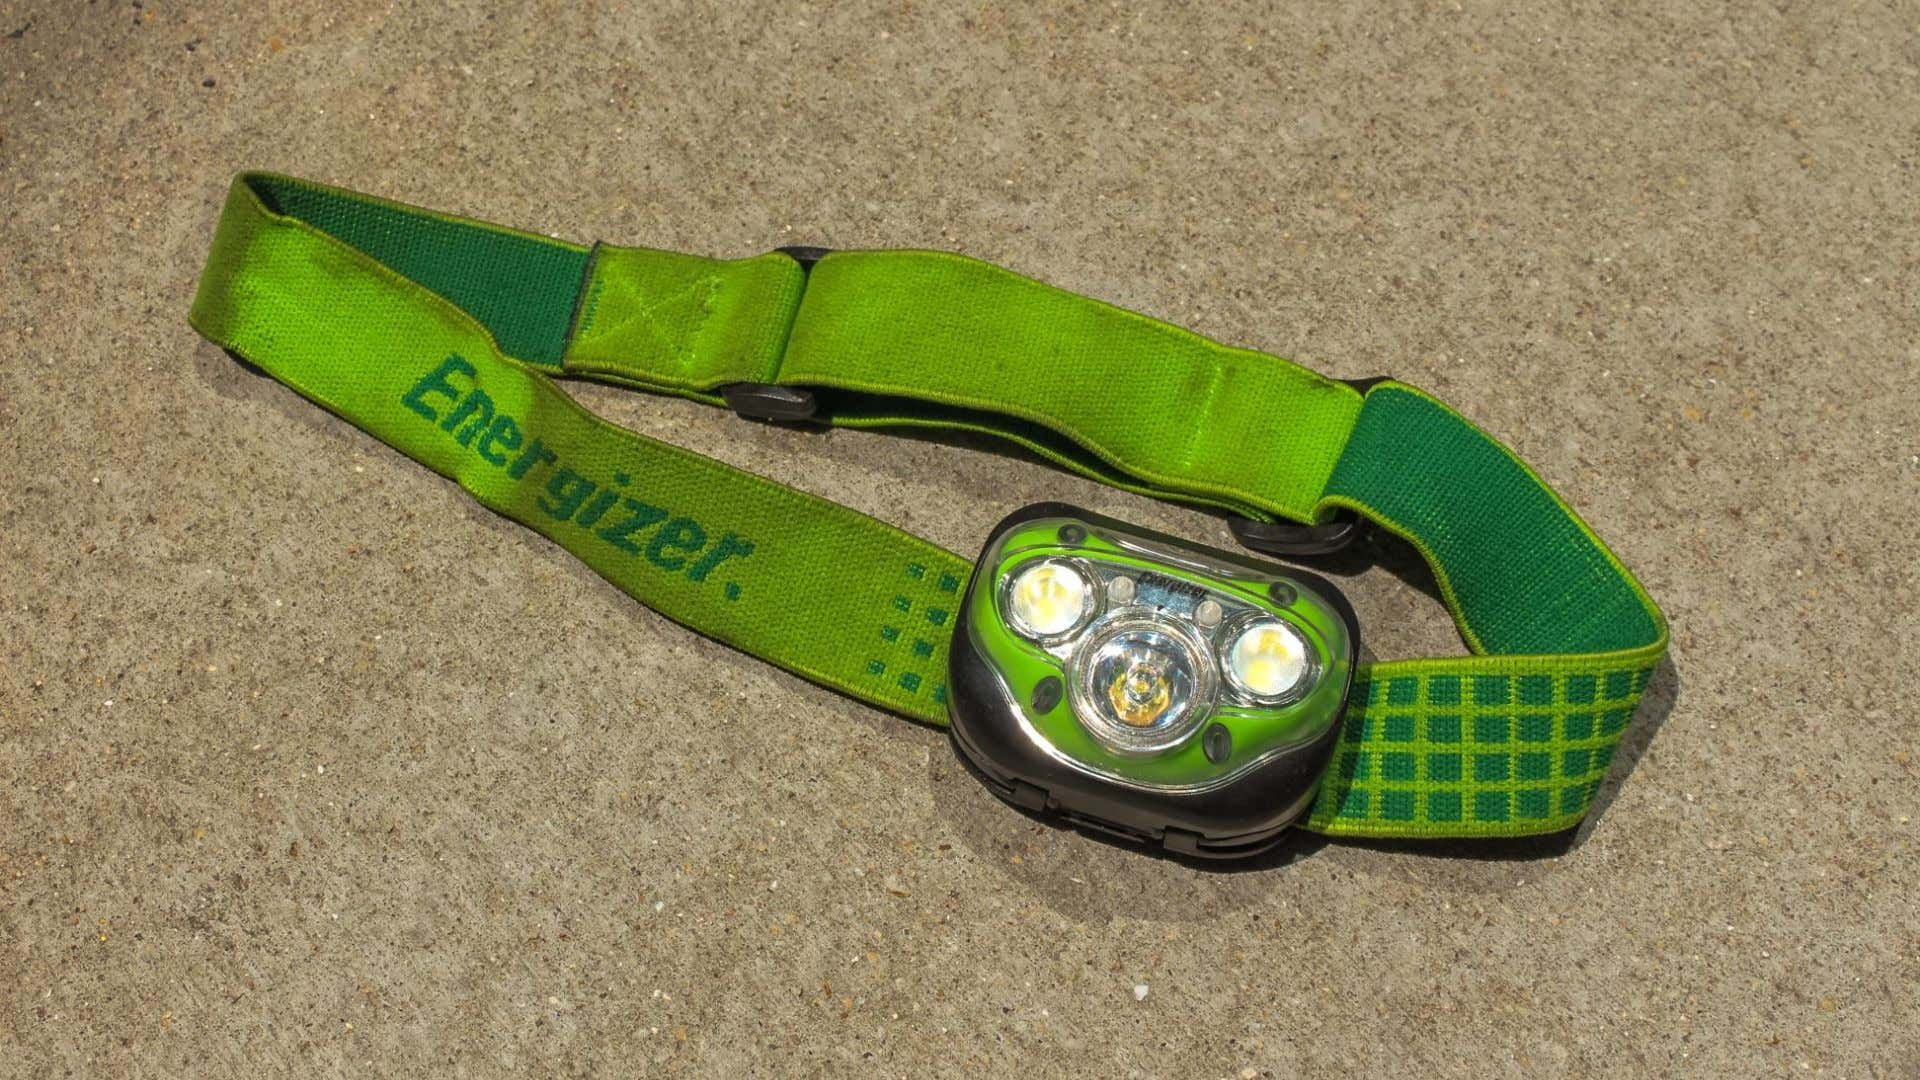 A headlamp provides hands-free light anywhere you go.